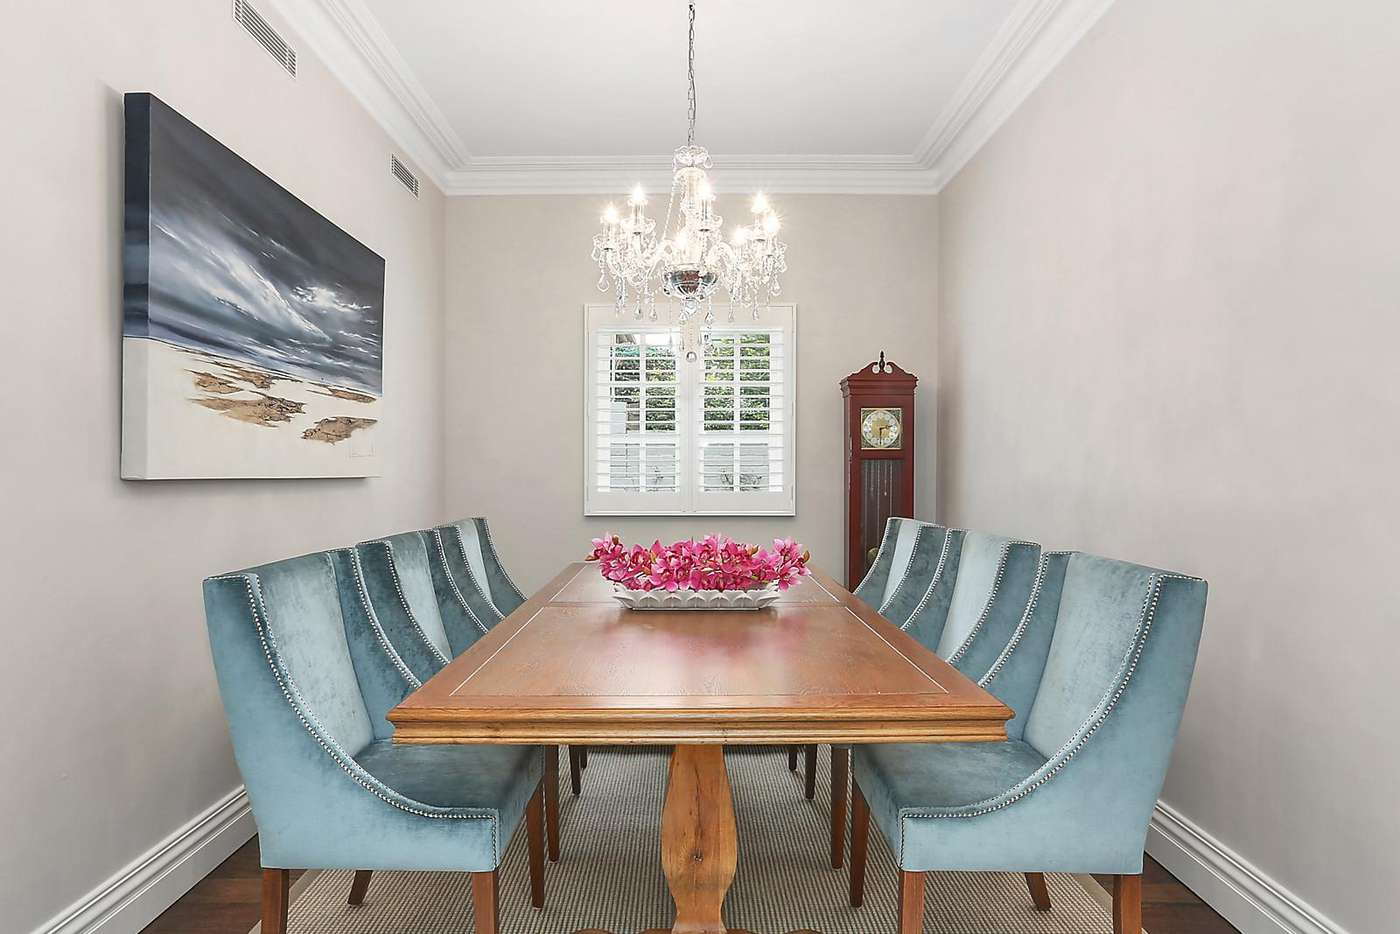 Sixth view of Homely house listing, 1 Rosebery Street, Mosman NSW 2088